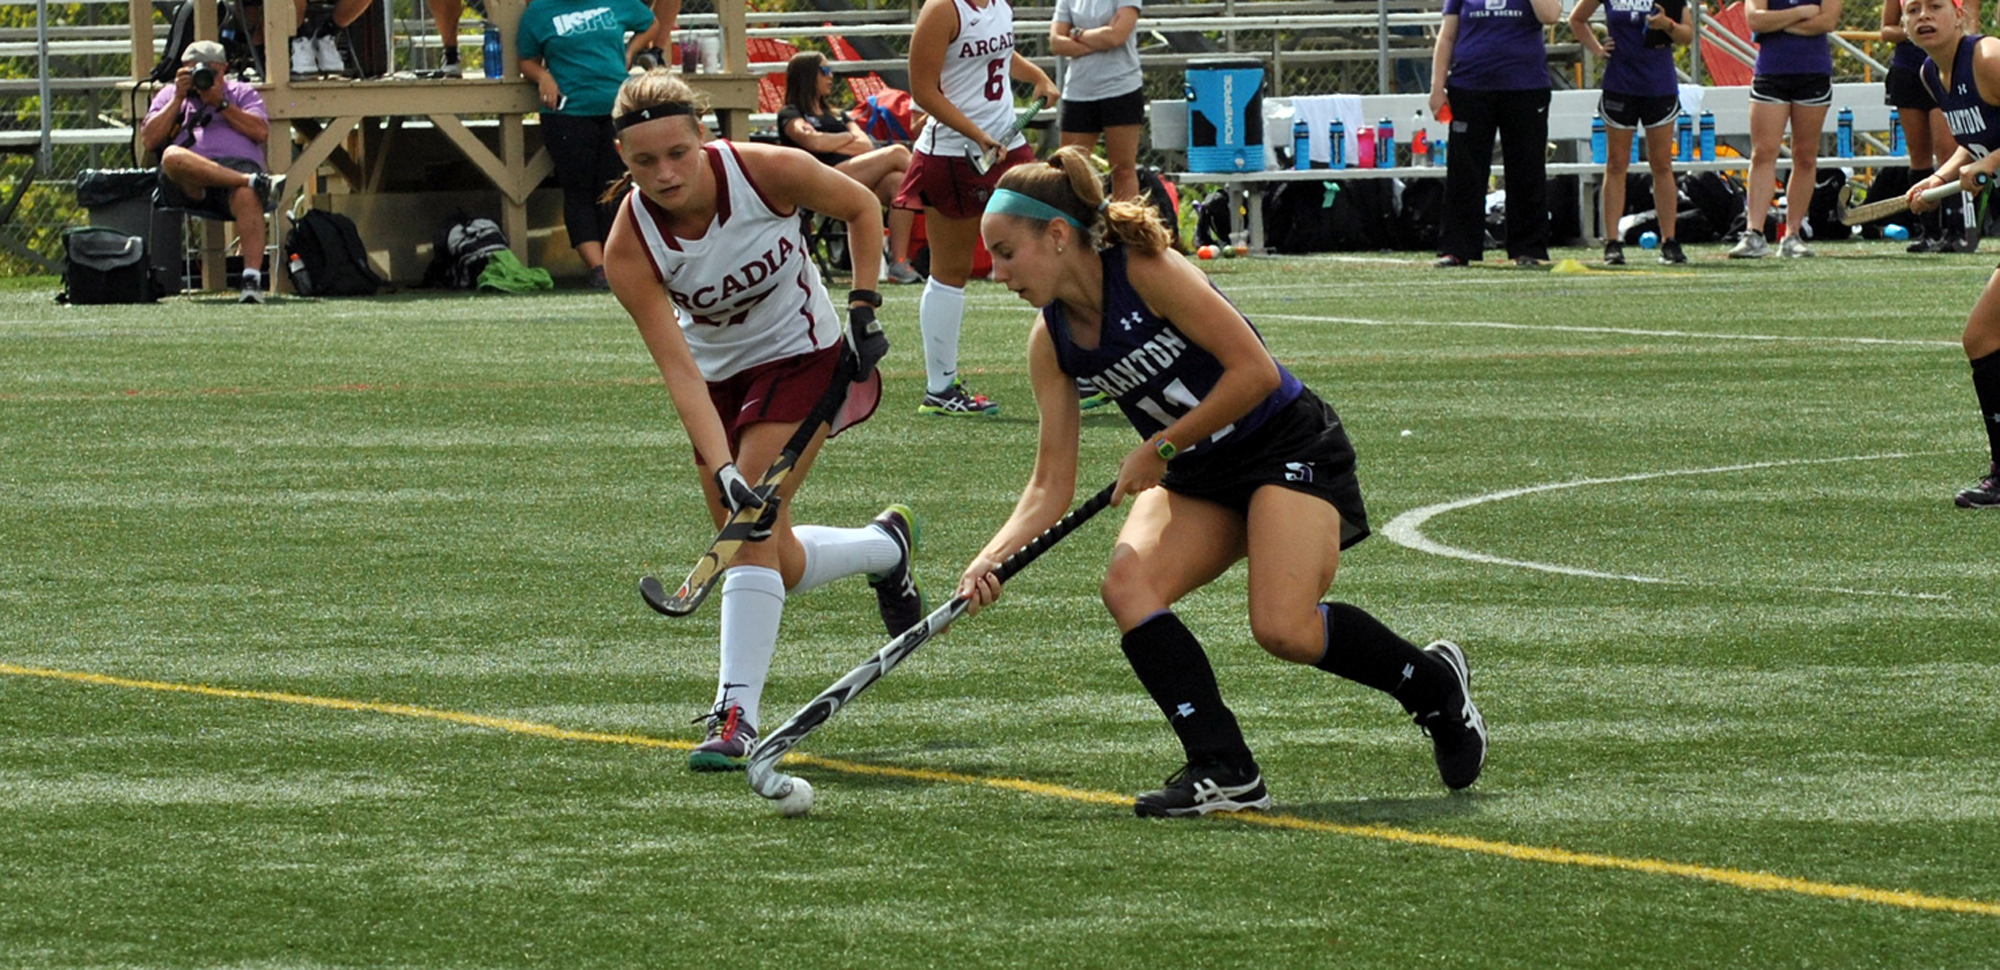 Megan Gallagher has been honored as the Landmark Conference Offensive Athlete of the Week for field hockey.